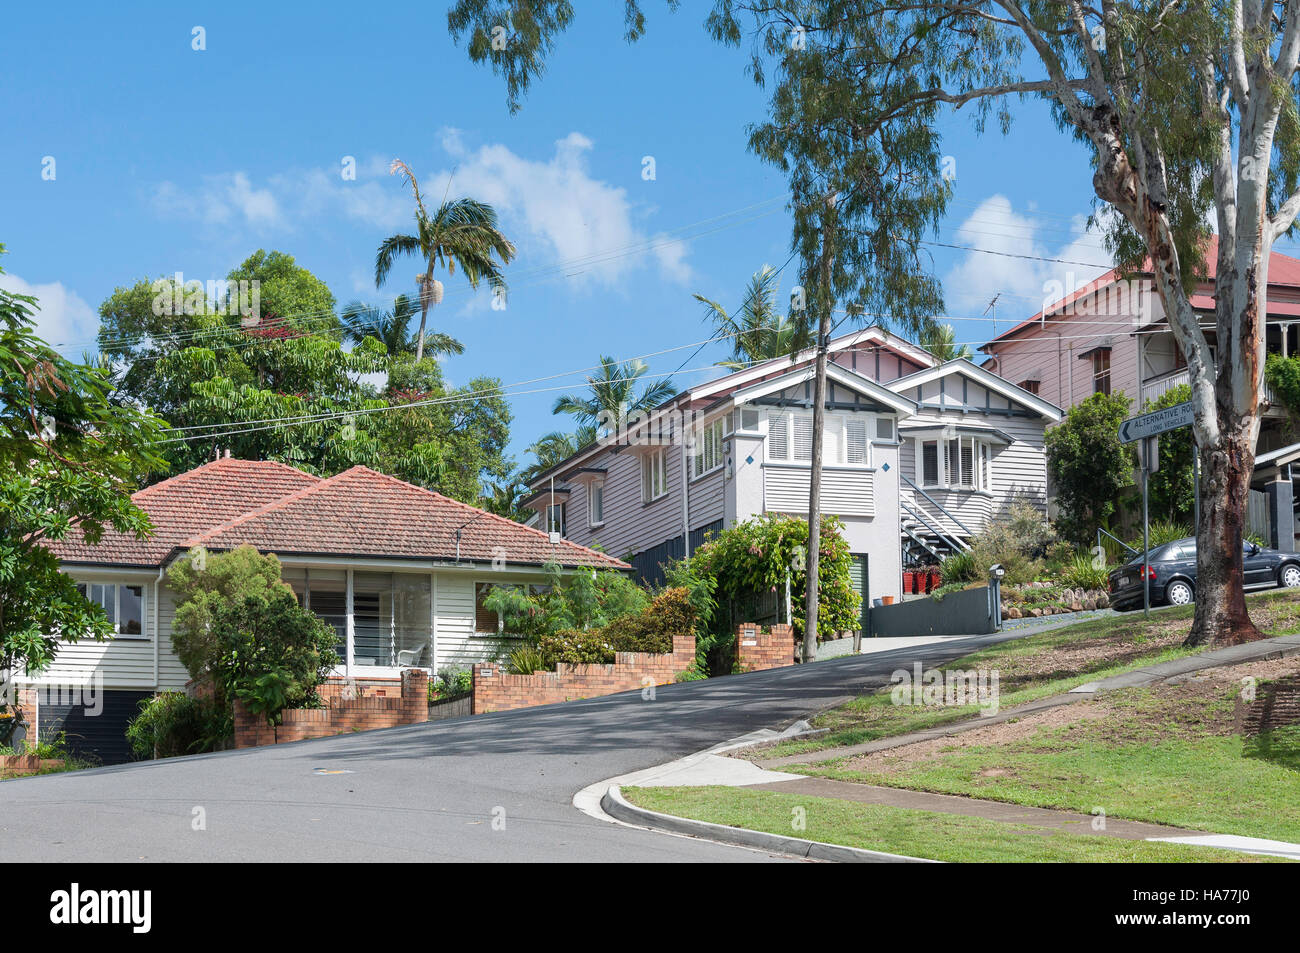 Stock photo typical weatherboard houses highgate hill brisbane queensland australia